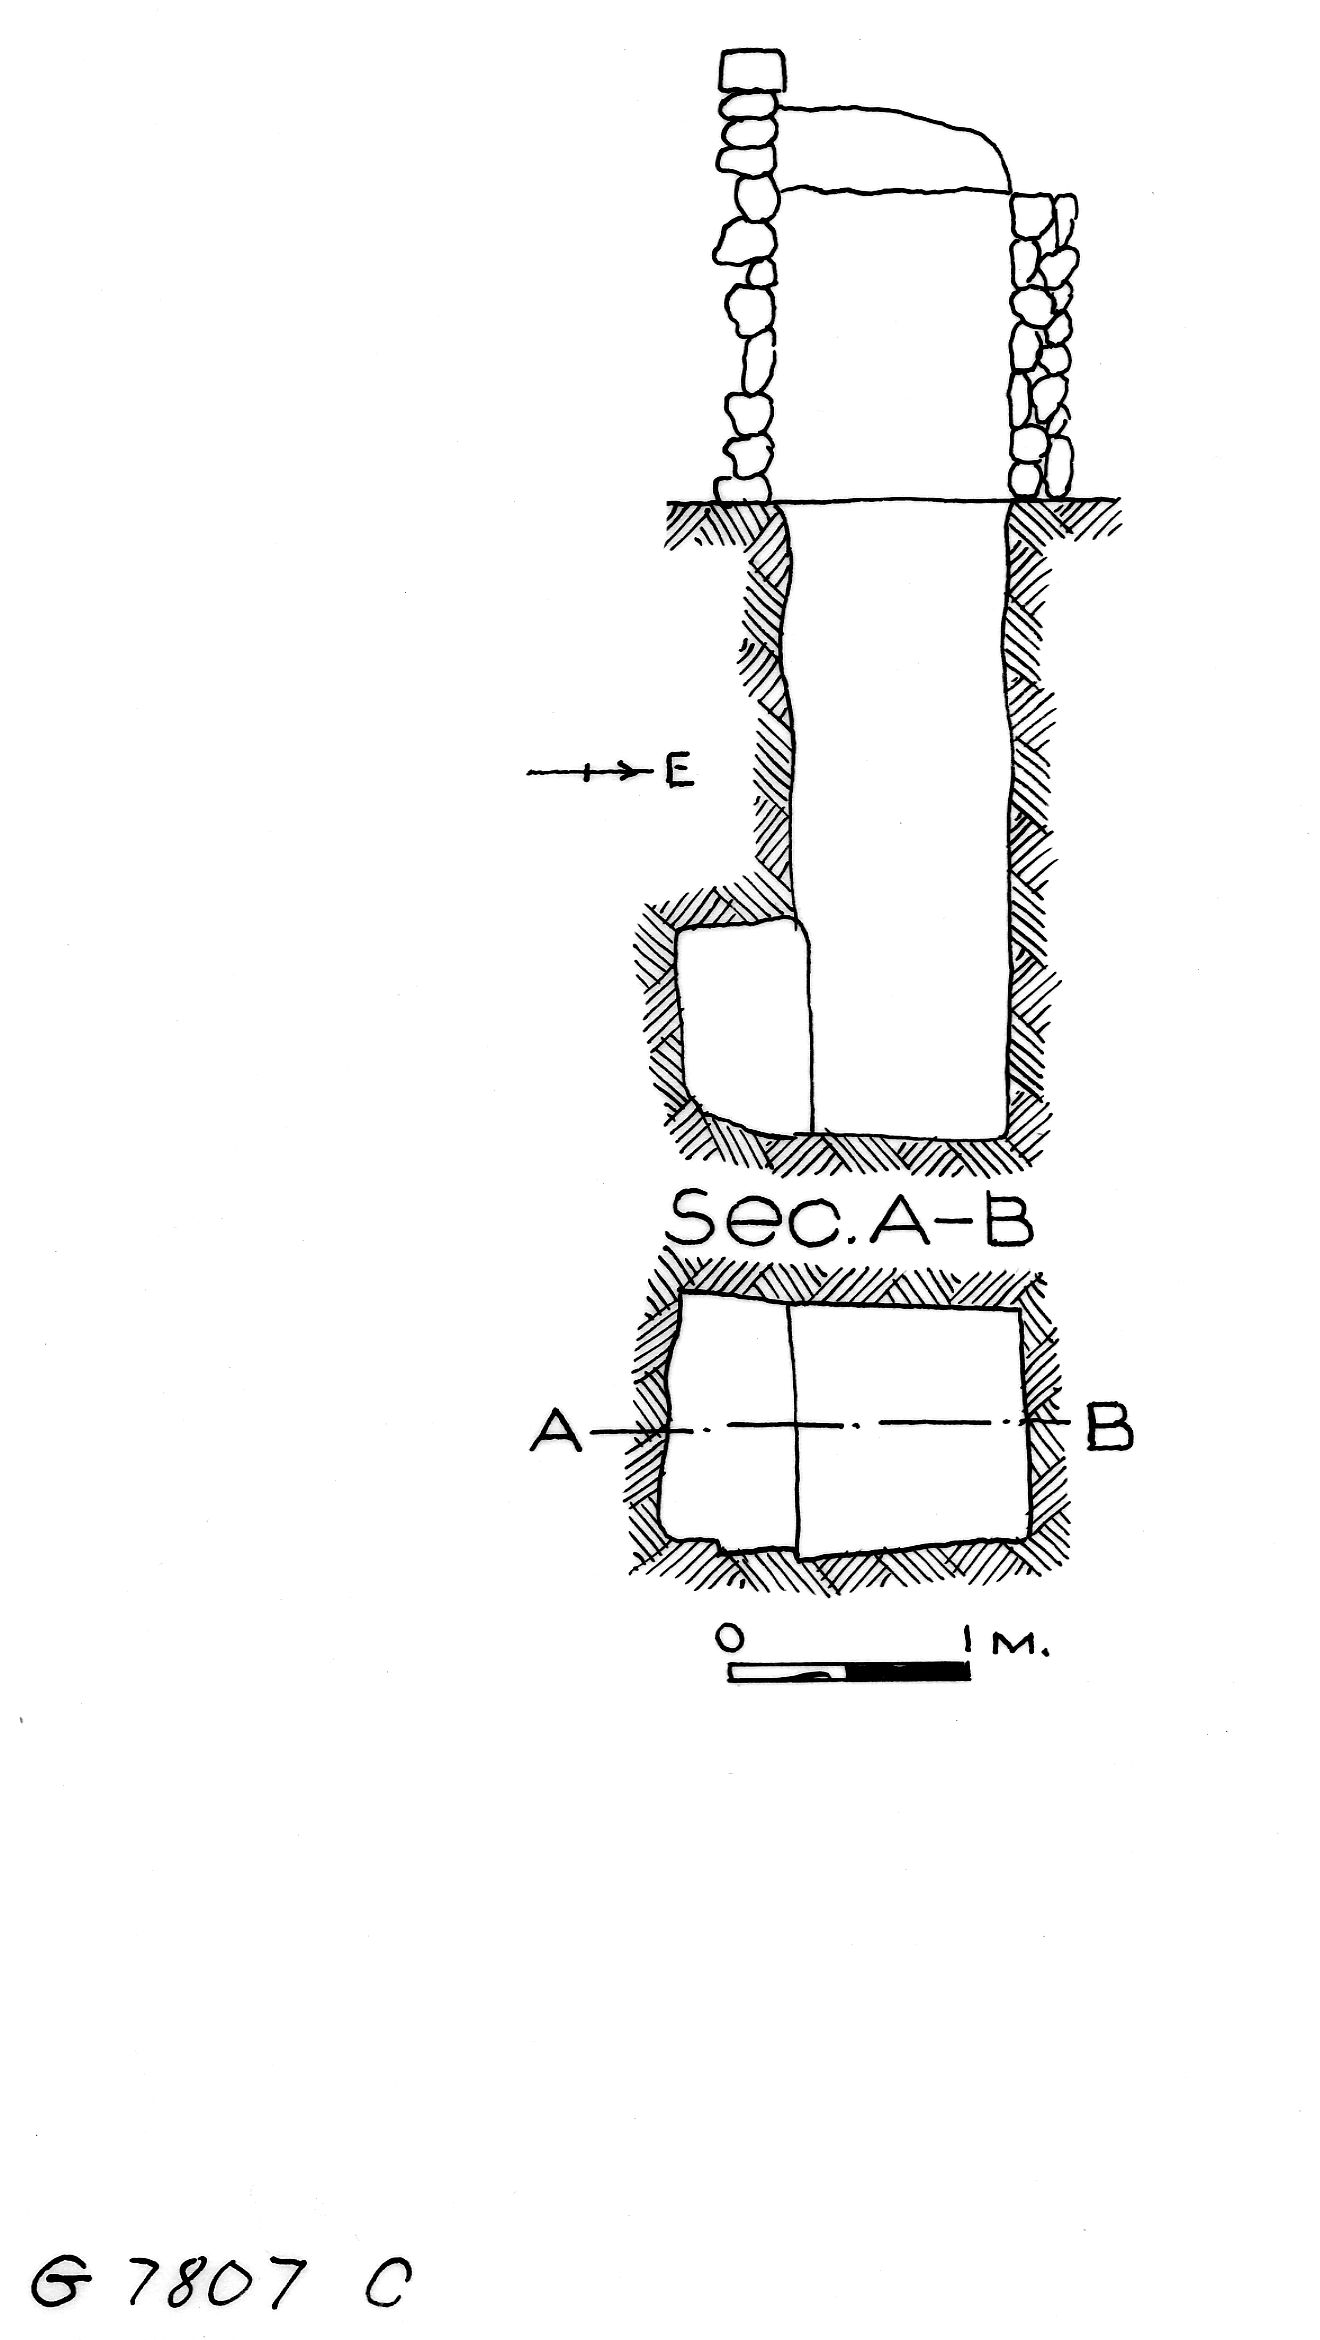 Maps and plans: G 7807, Shaft C